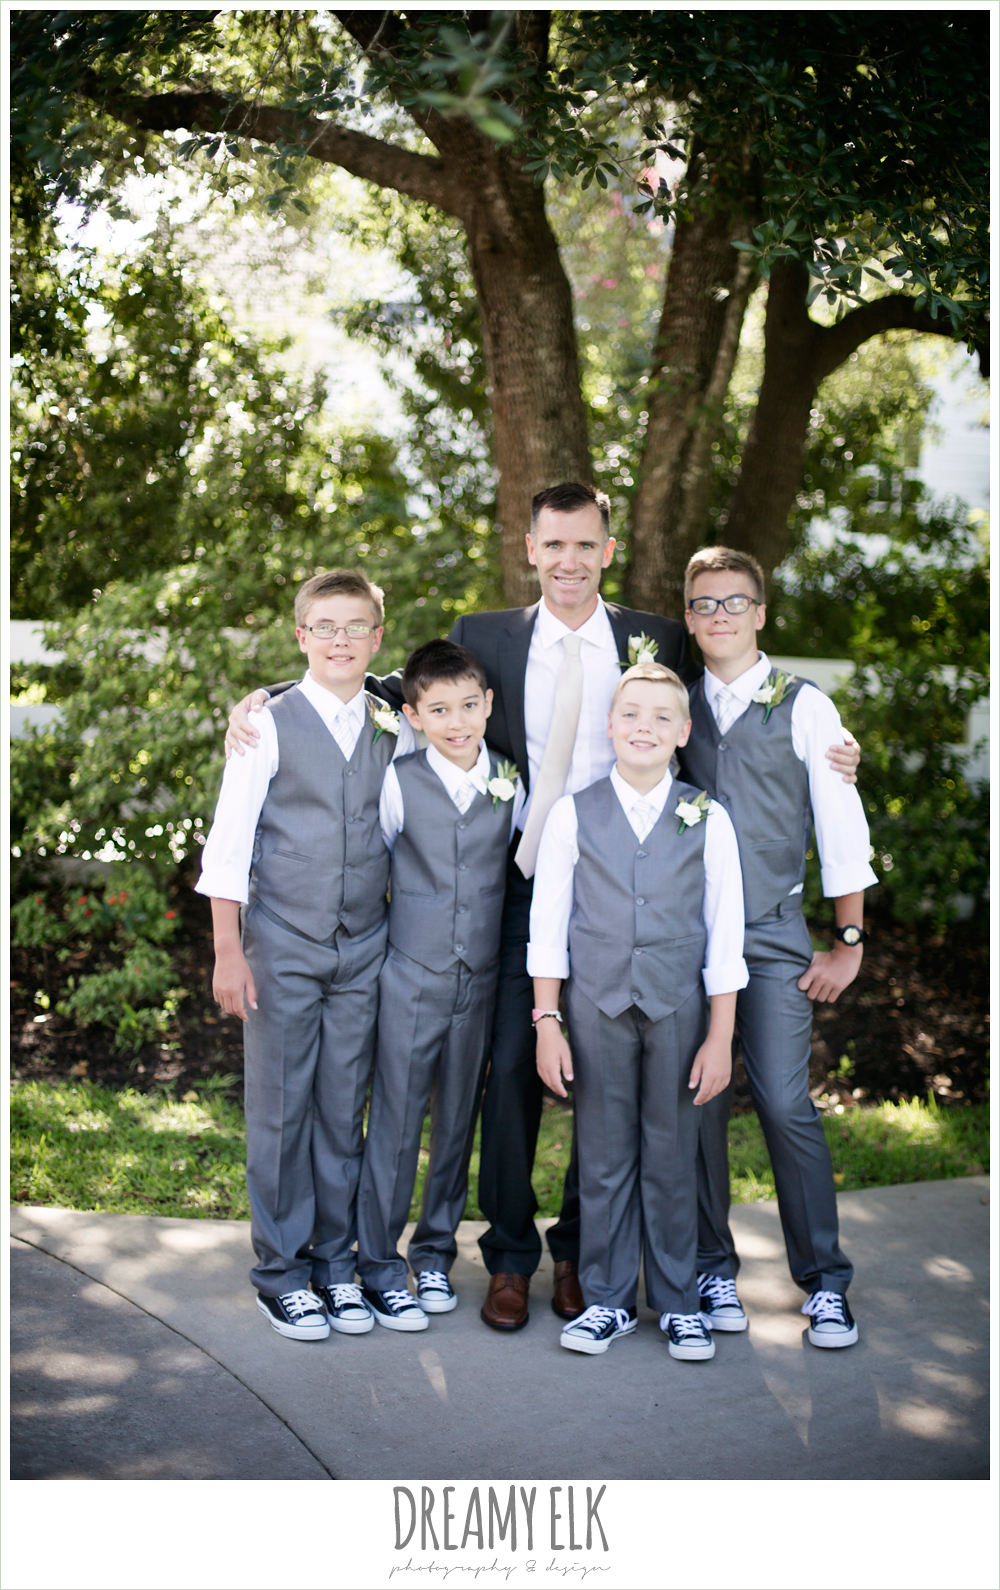 outdoor bridal party photo, groom and groomsmen, hugo boss groom's suit, jcrew boys suits, july summer morning wedding, ashelynn manor, magnolia, texas {dreamy elk photography and design}